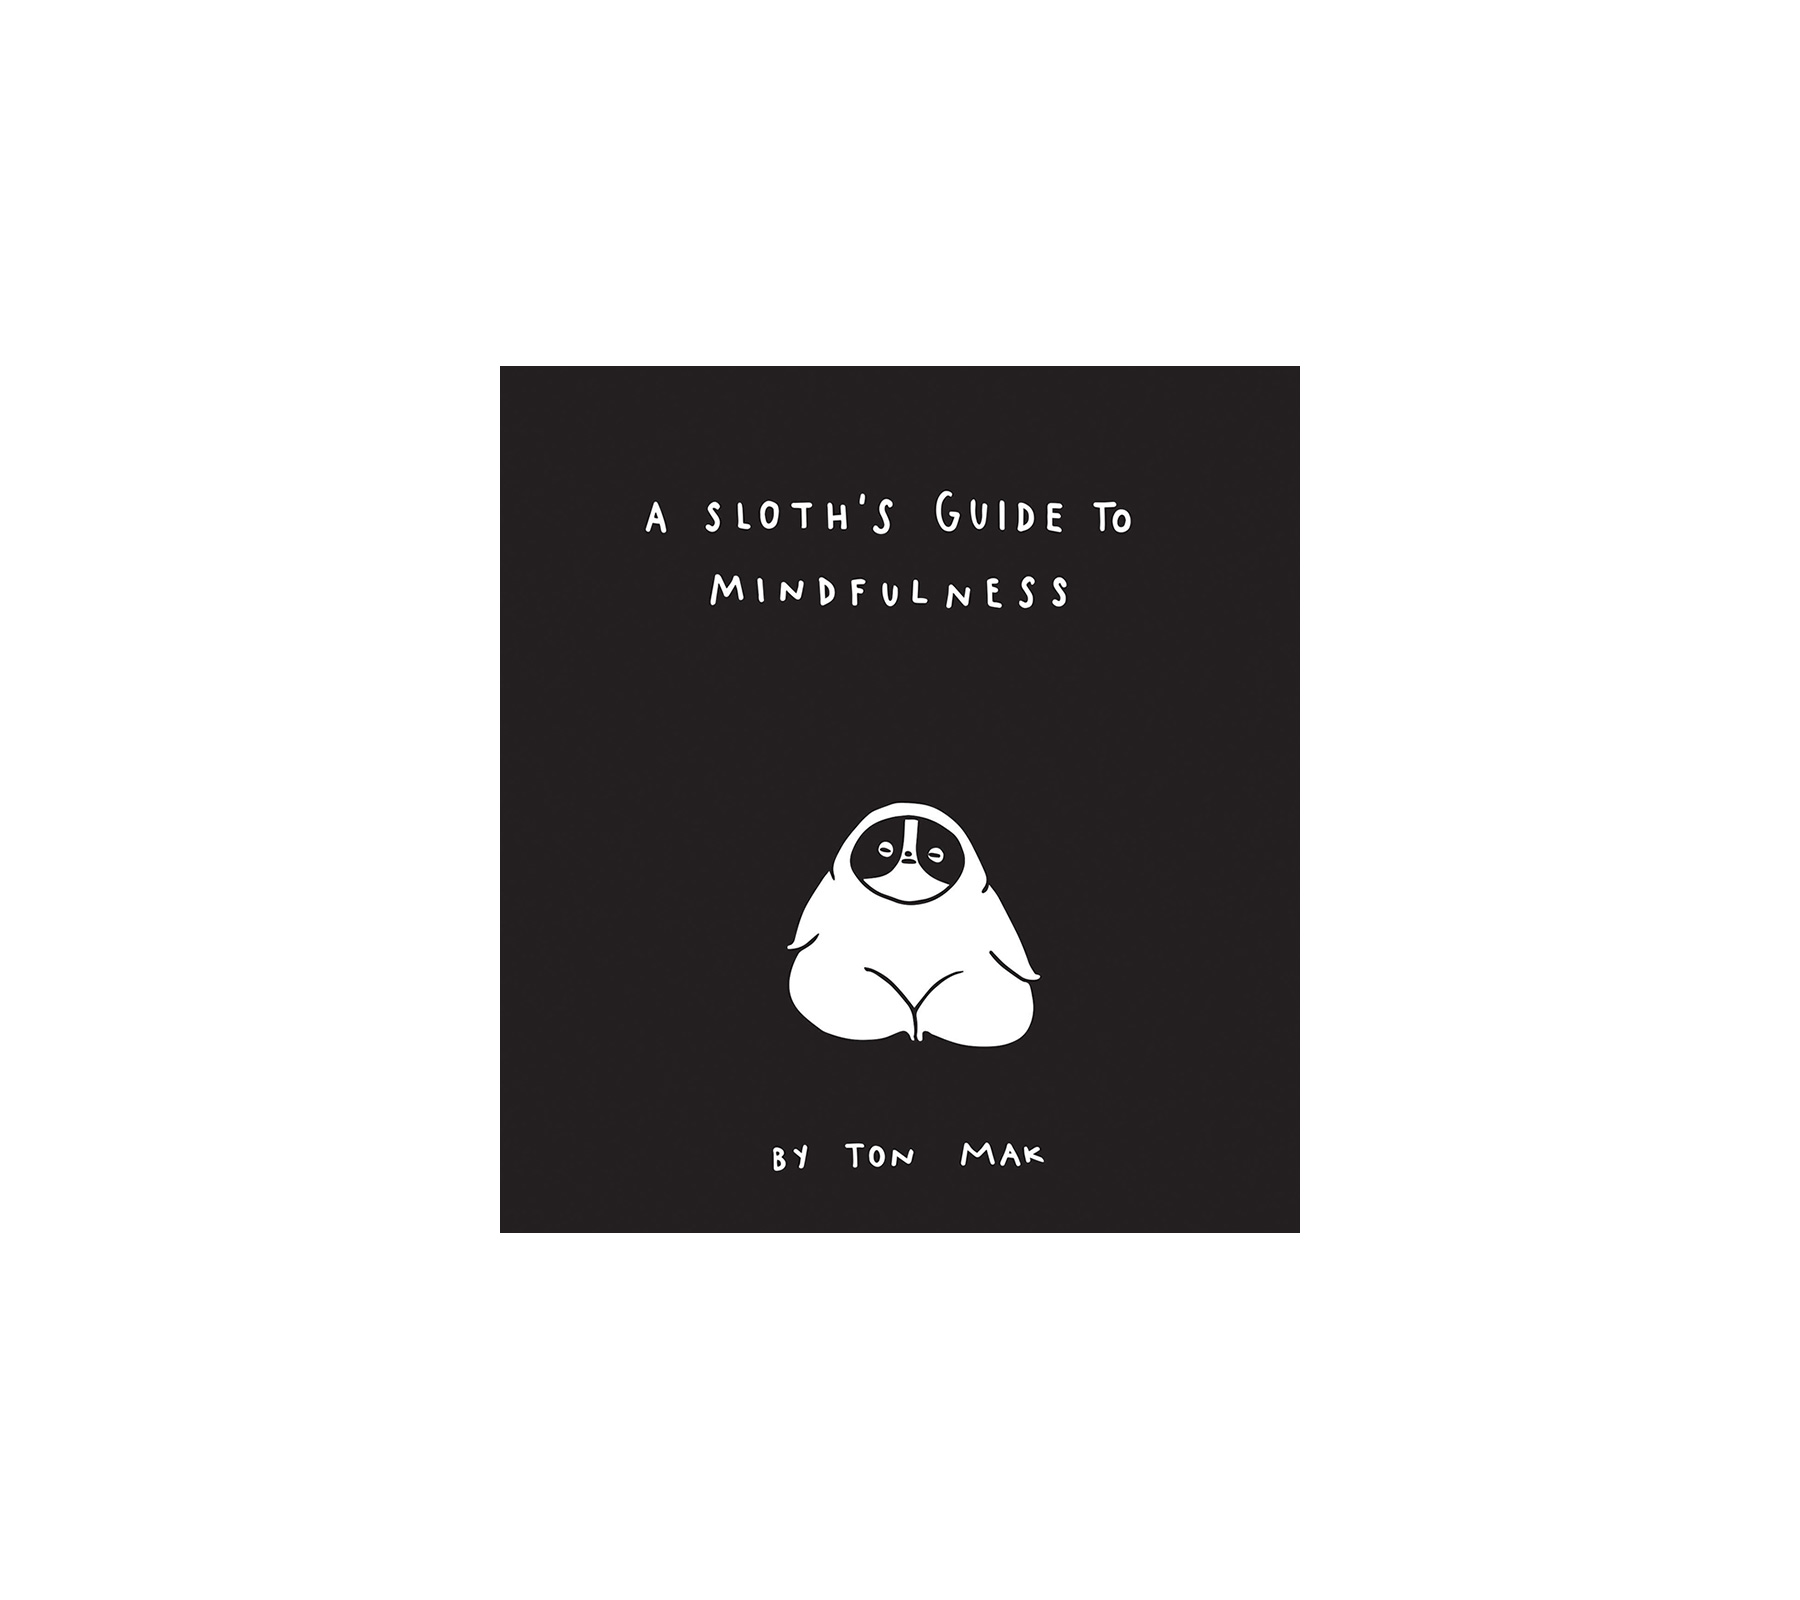 Gifts for avid readers: A Sloth's Guide to Mindfulness, by Ton Mak